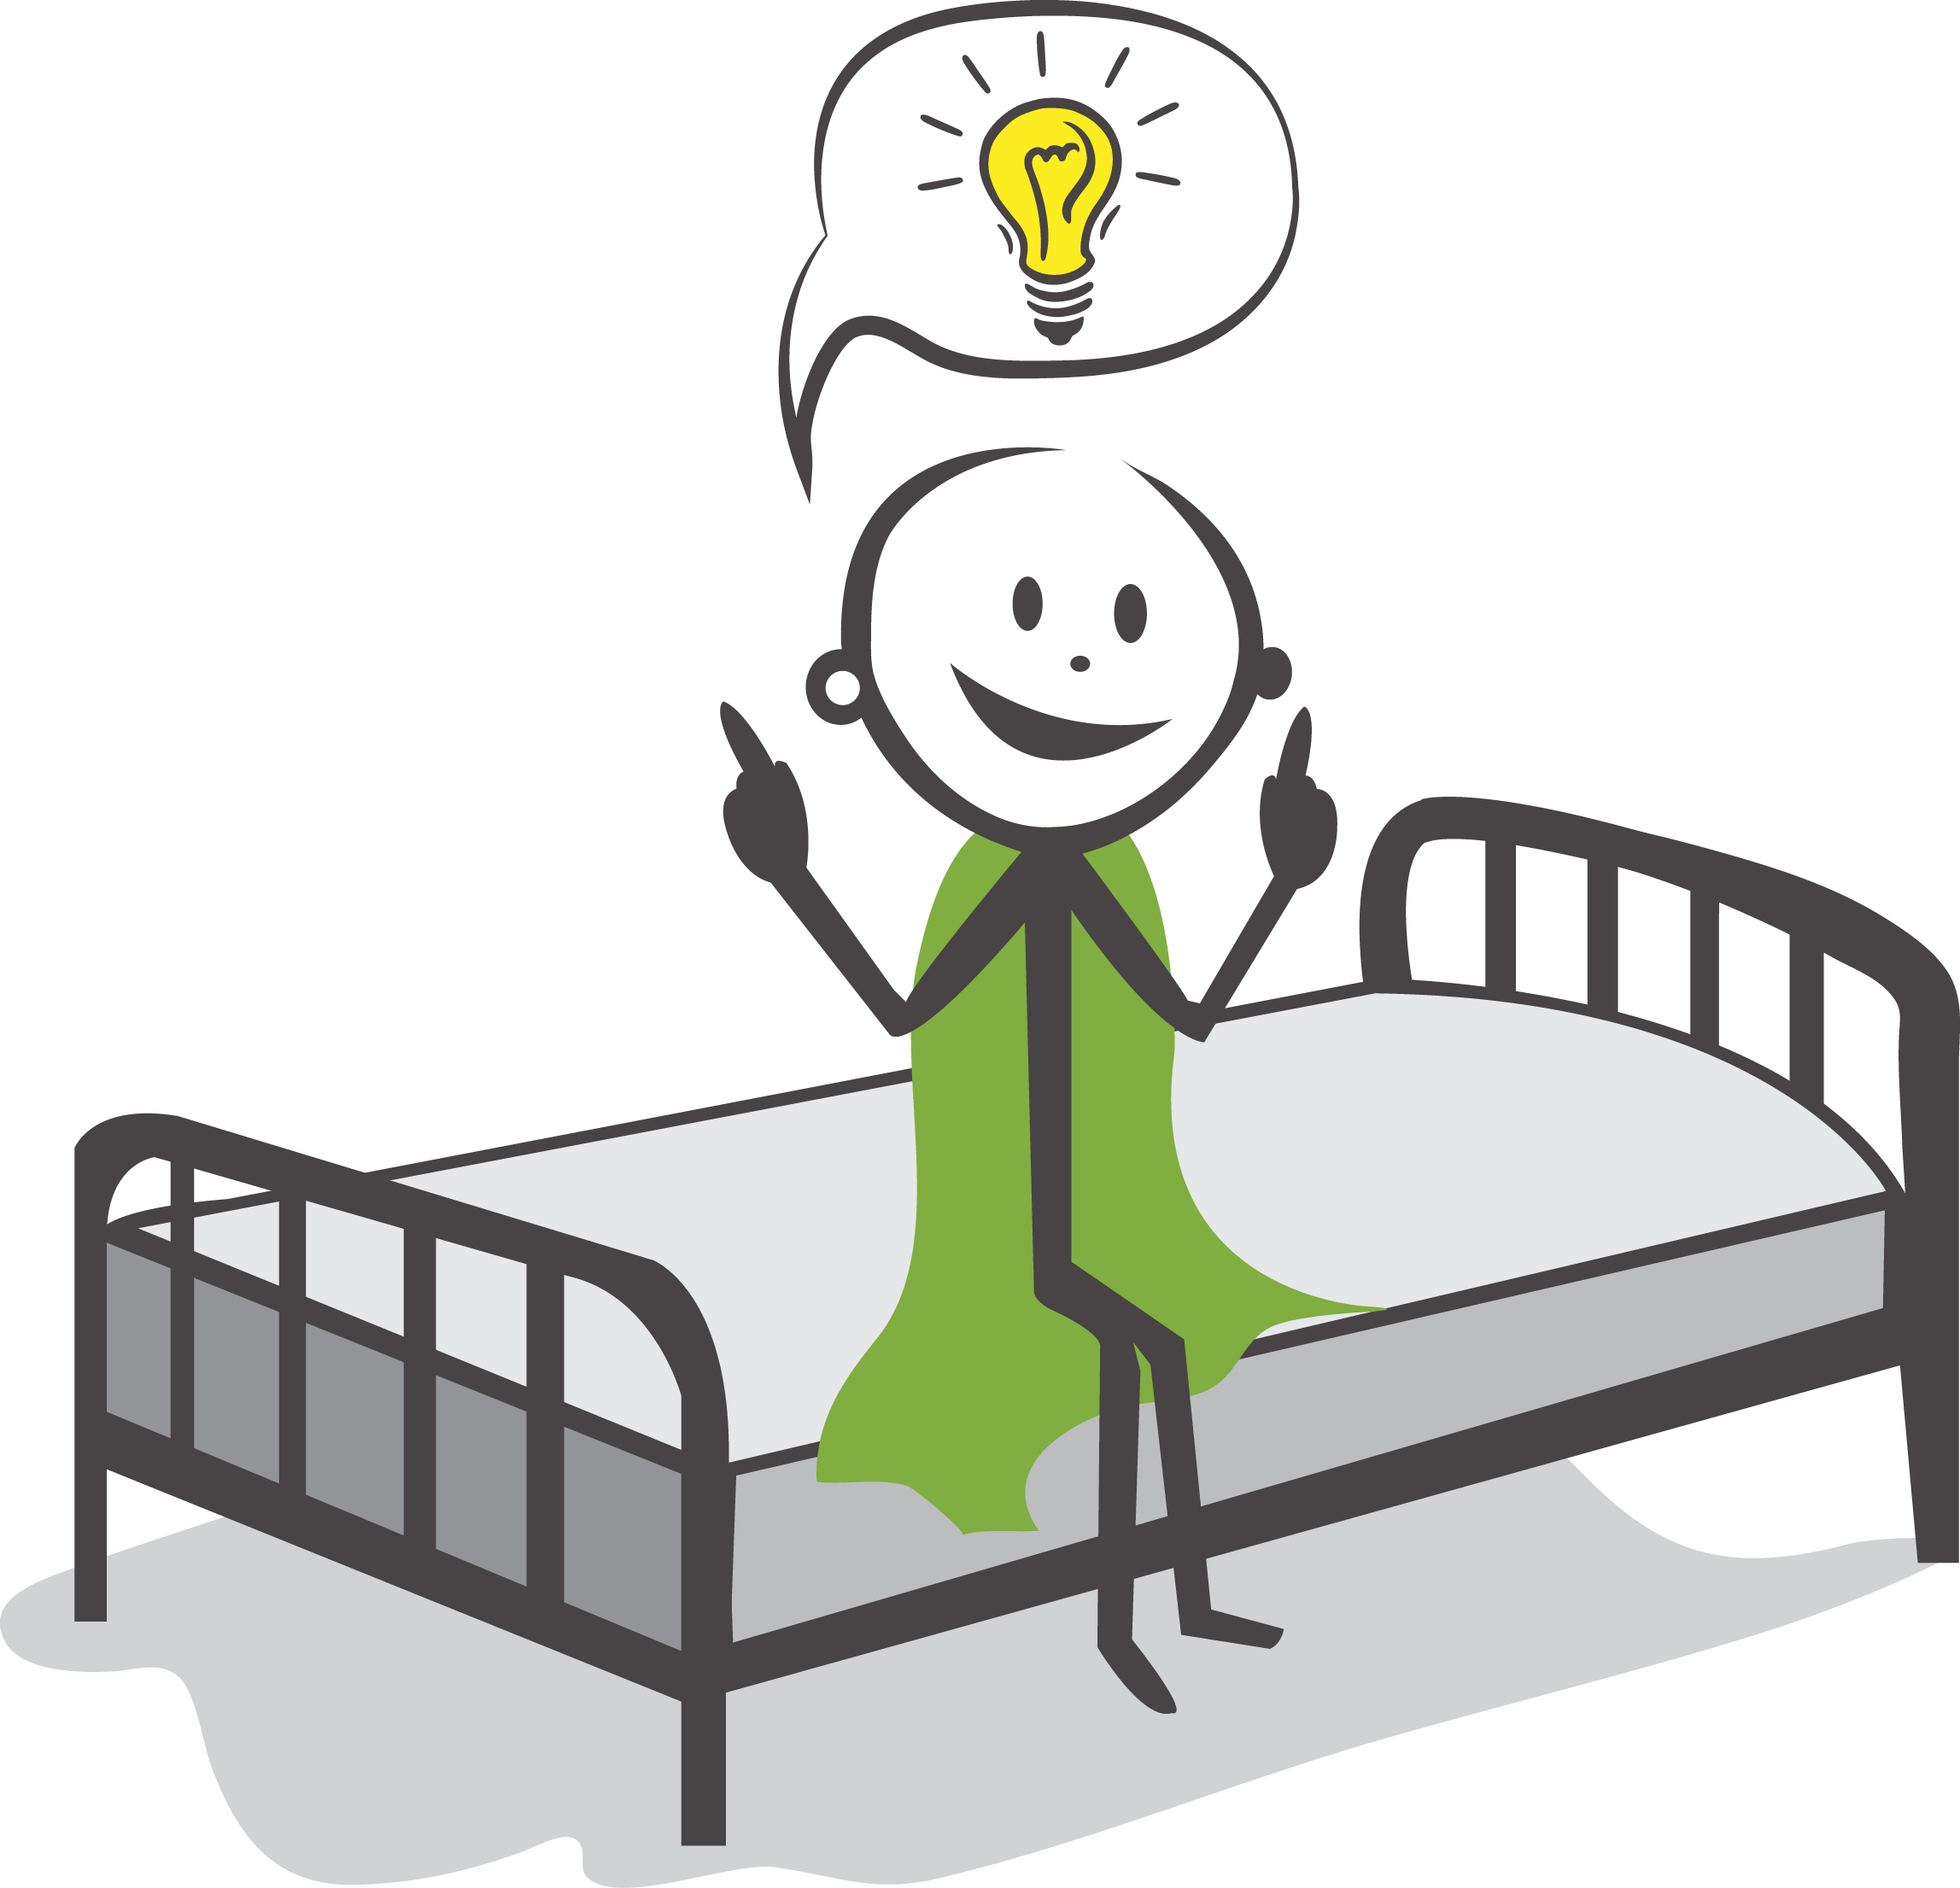 About sleep titan welcome. Clipart sleeping bed covers